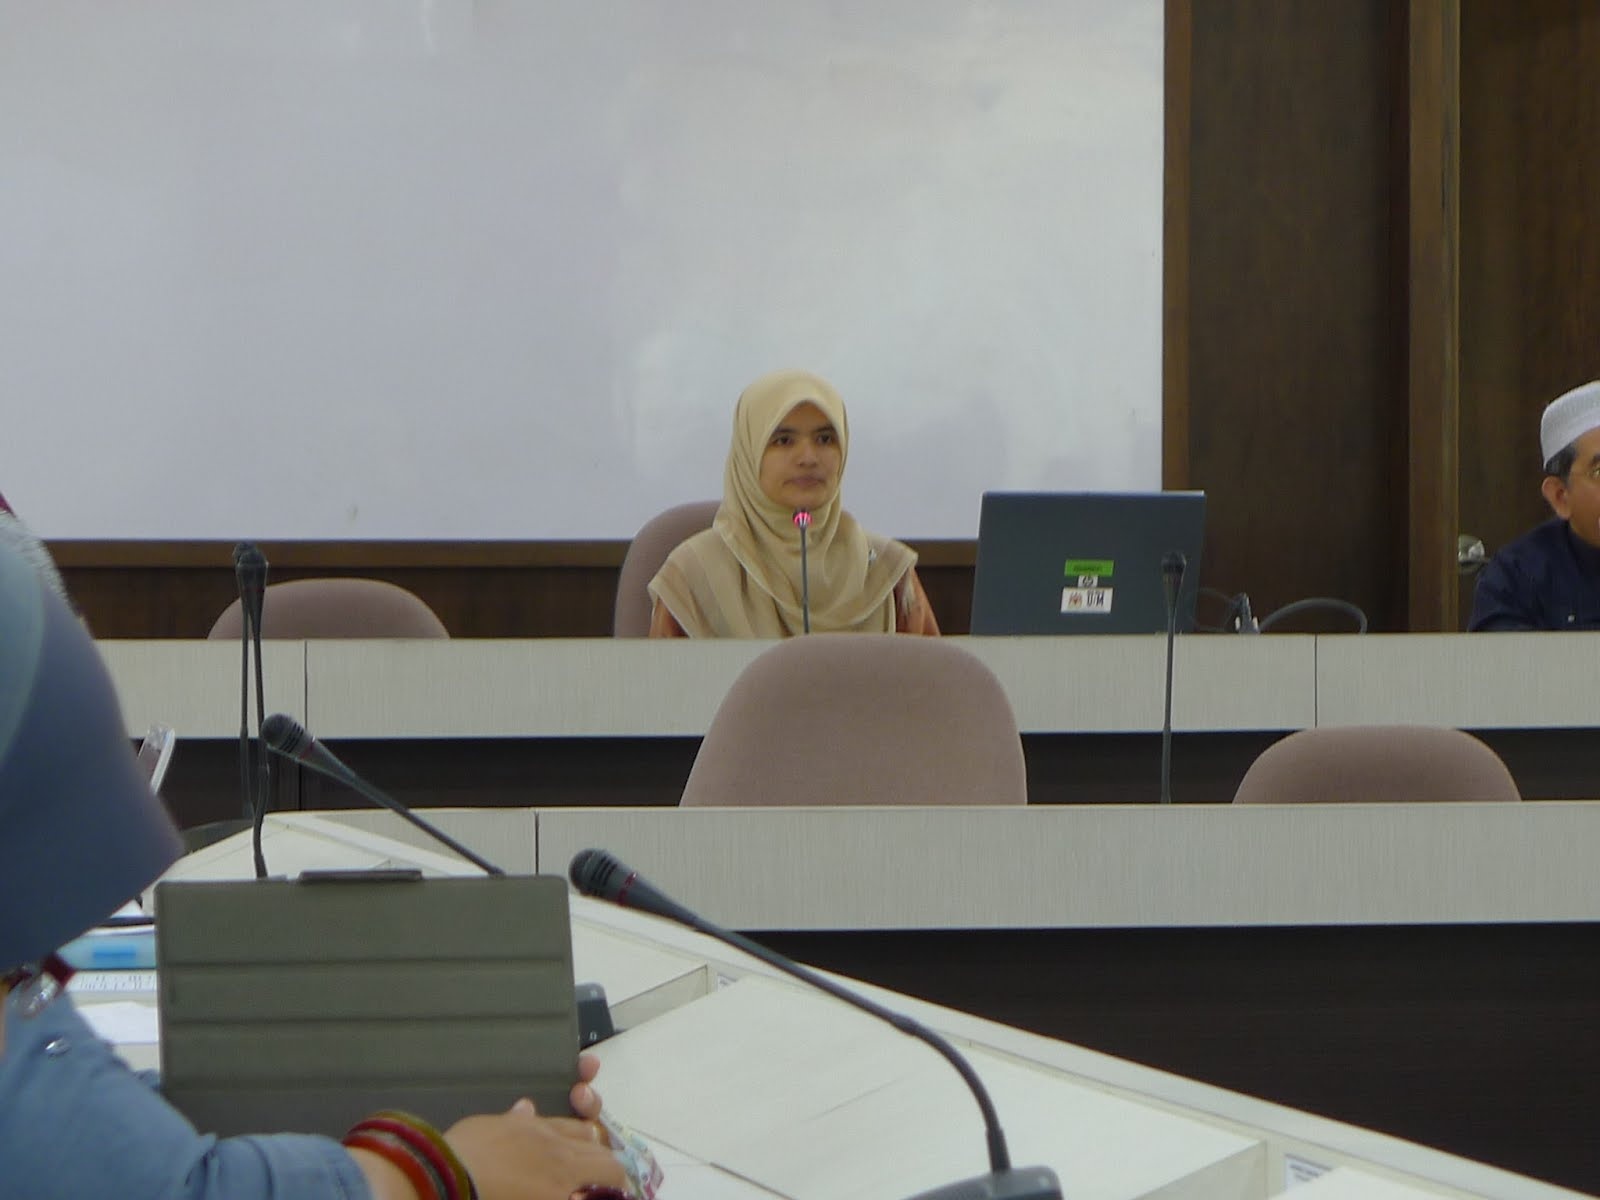 mohammad helmi hidthiir Chapter 2 chapter 2 consumer behaviour theory 21 introduc1 on chapter 1 provided an overview of the area of research for this study, by identifying, among others, the objectives of the study together with the importance attributed to the study.